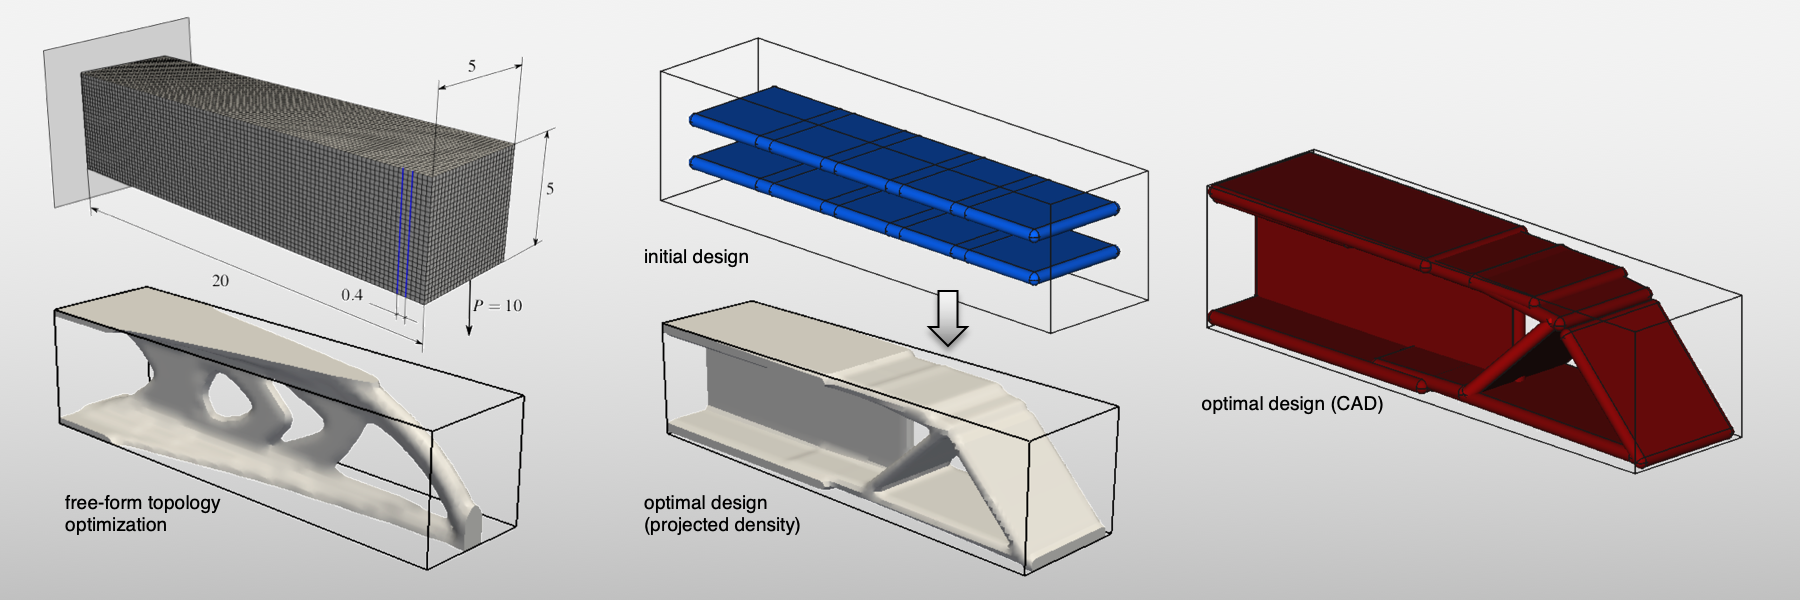 This slide shows the topology optimization of a cantilever beam made of plates